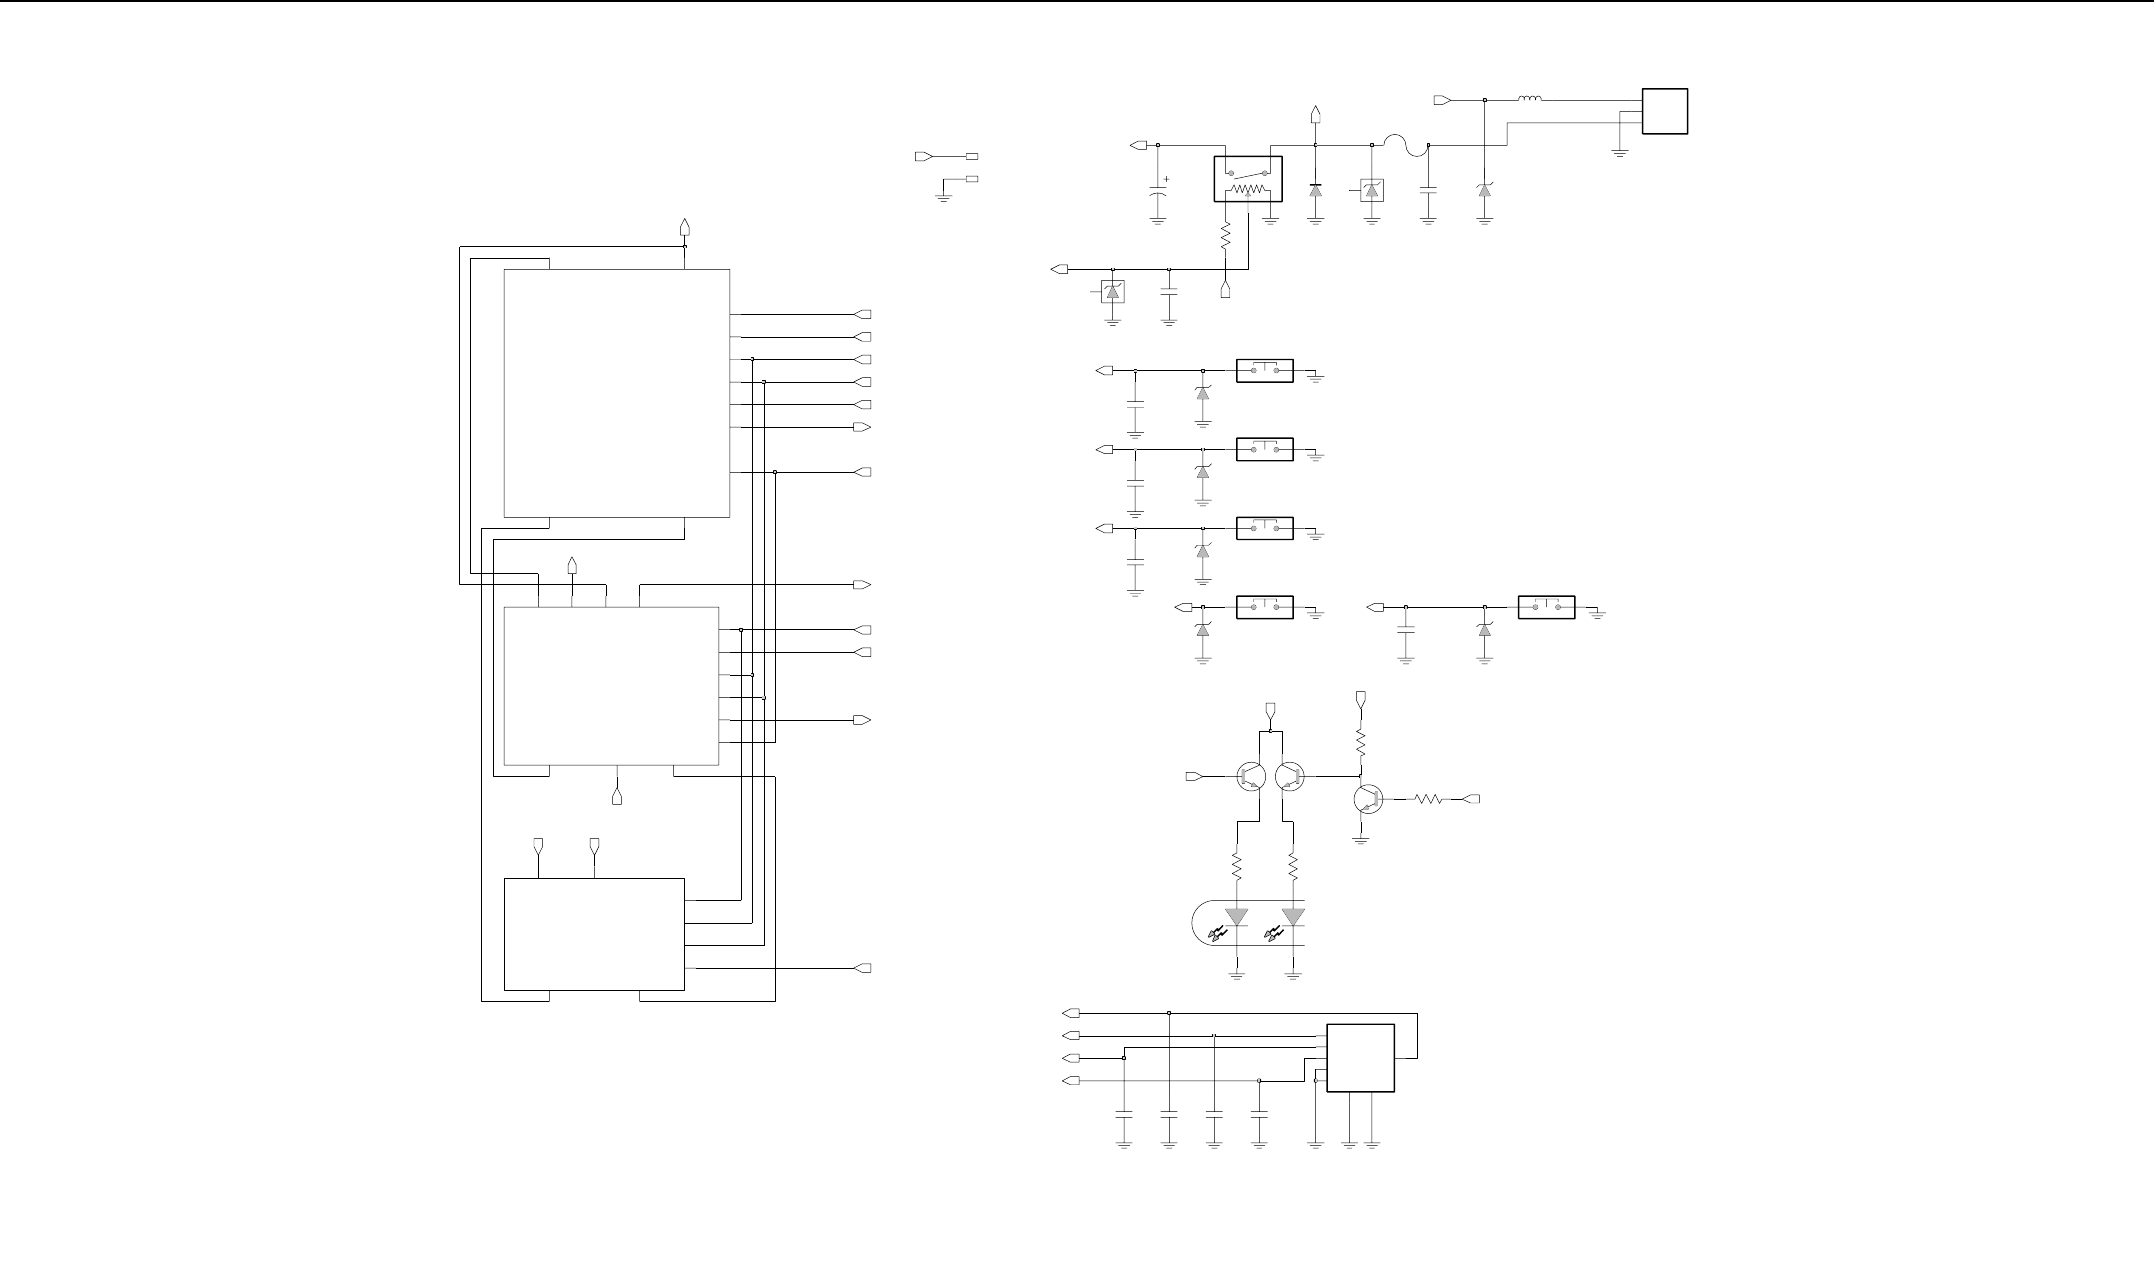 4110j64 Detailedbook Gp Series Gp328 Gp338 Detailed Service Manual F Type Pcb Balun Circuit Diagram Board Schematic Diagrams And Parts List 6a 17